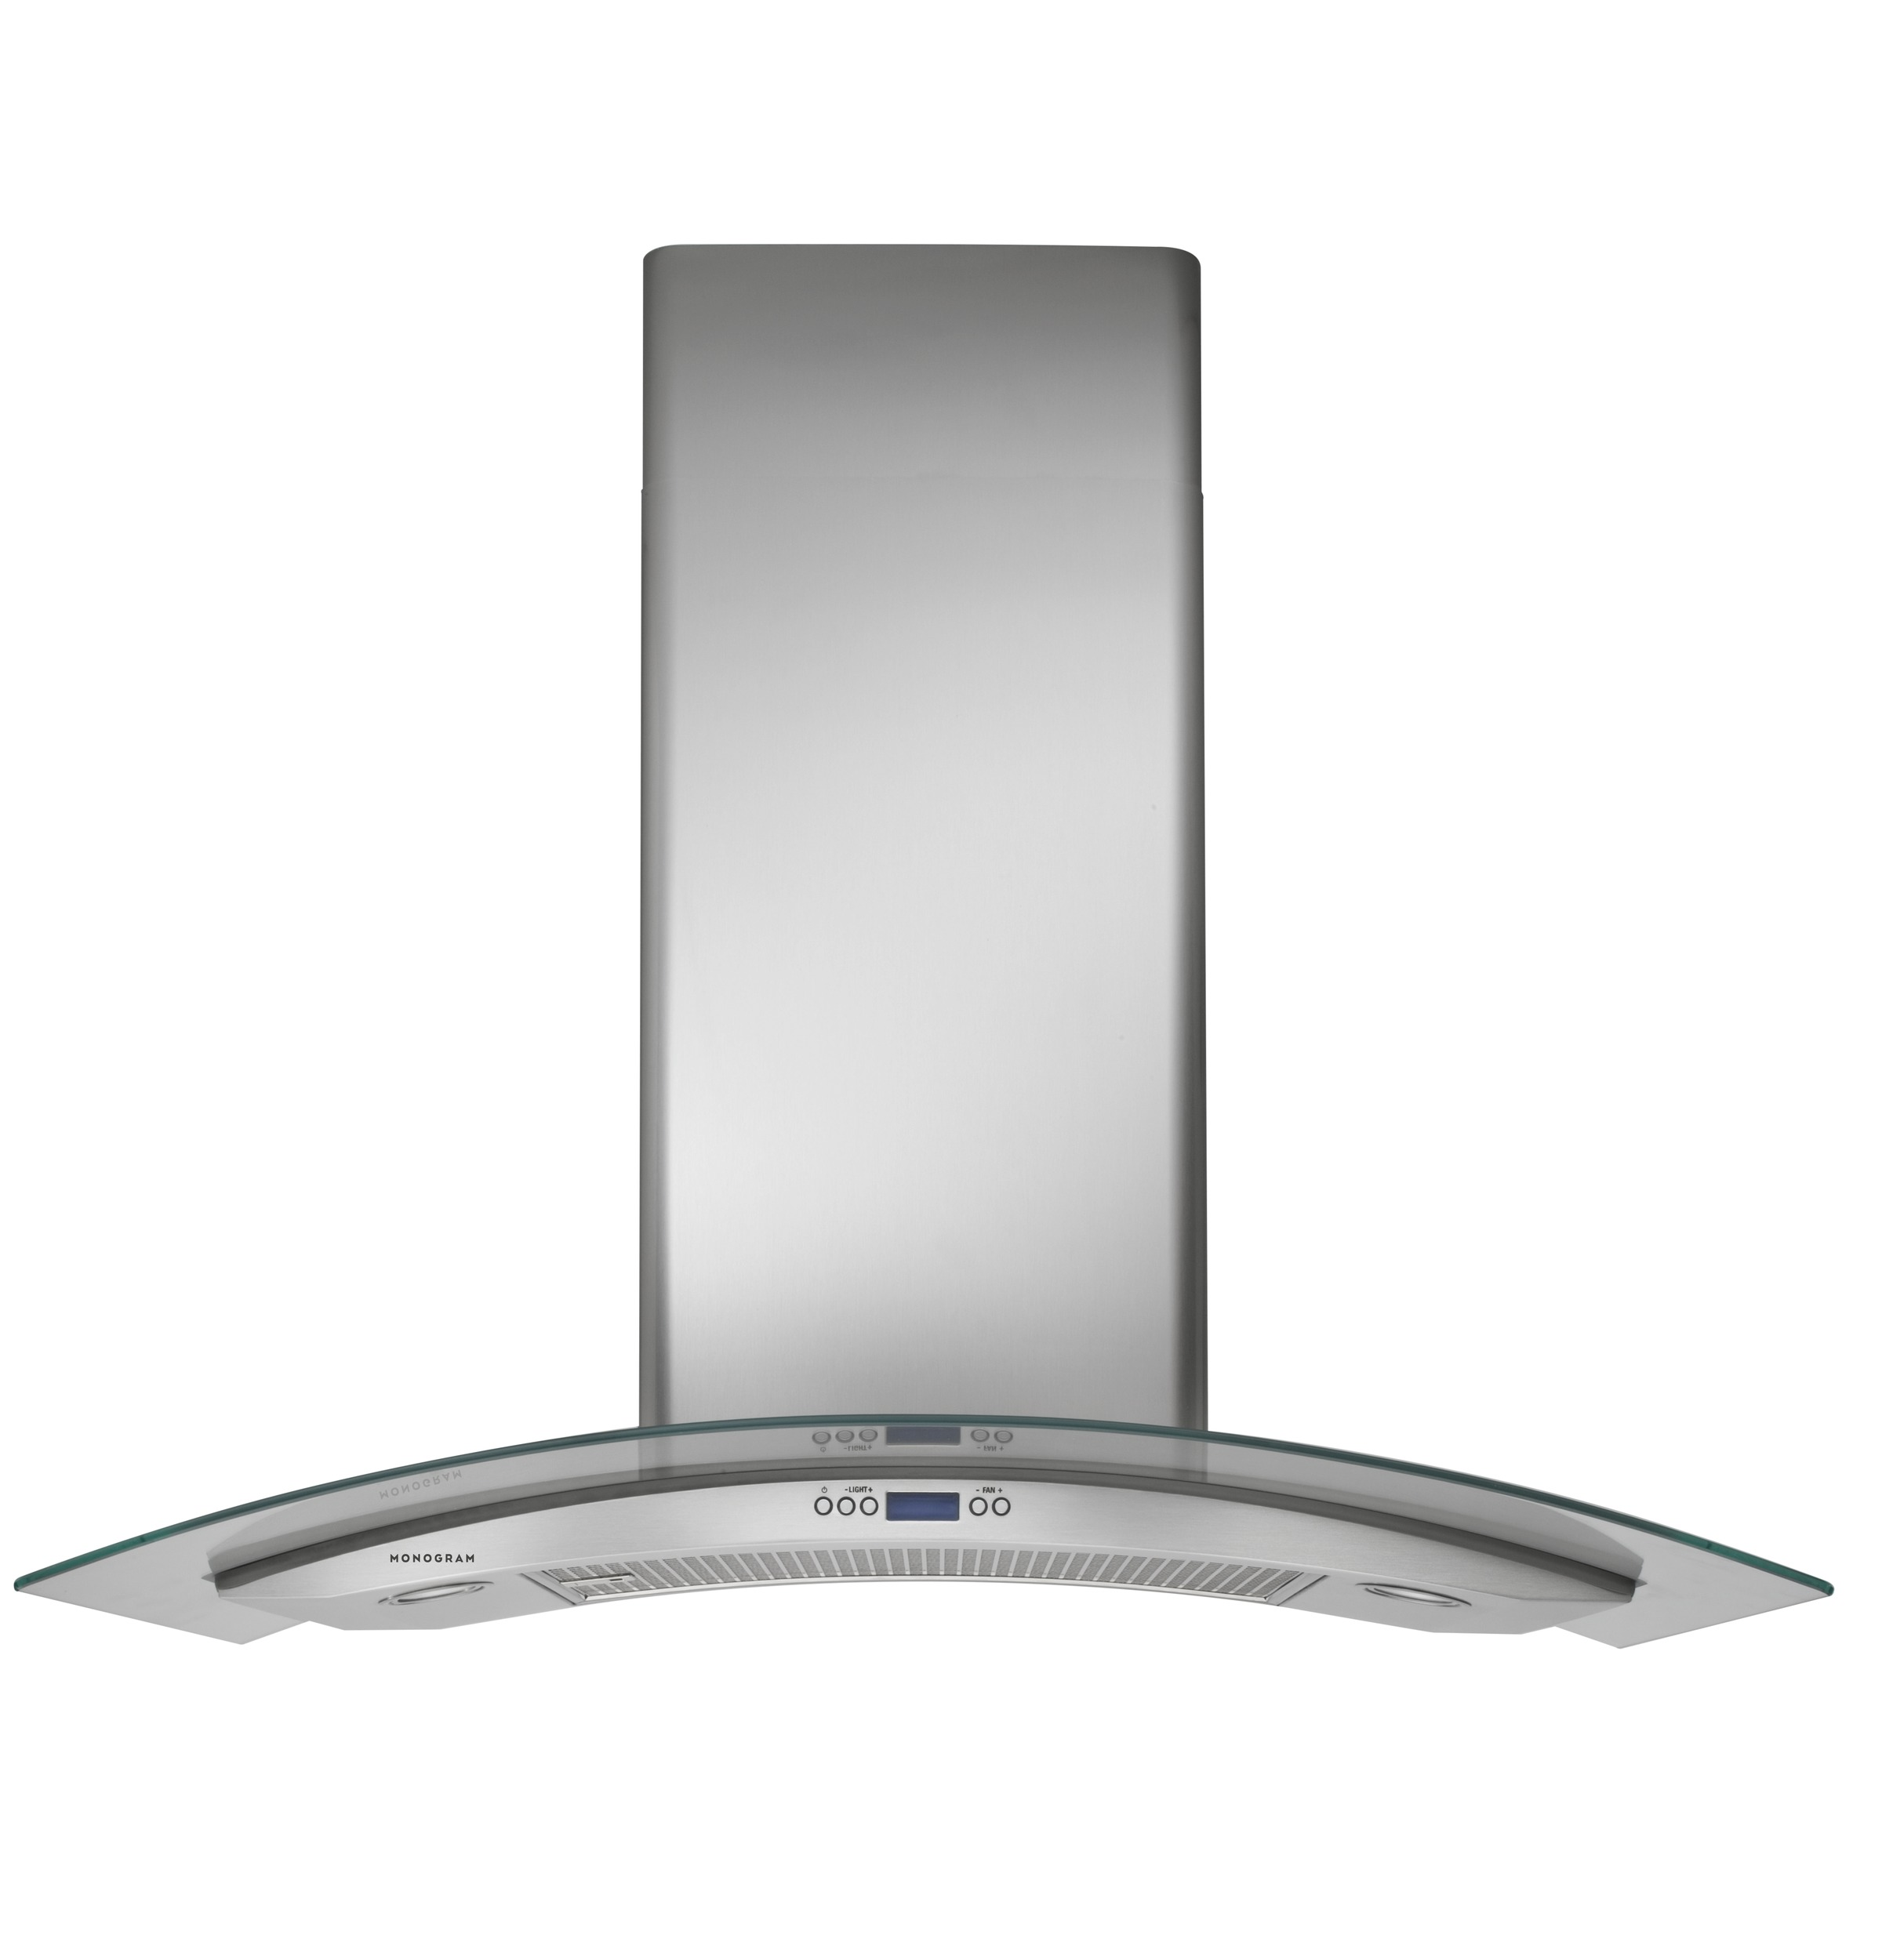 "Monogram Monogram 36"" Glass Canopy Wall-Mounted Hood"